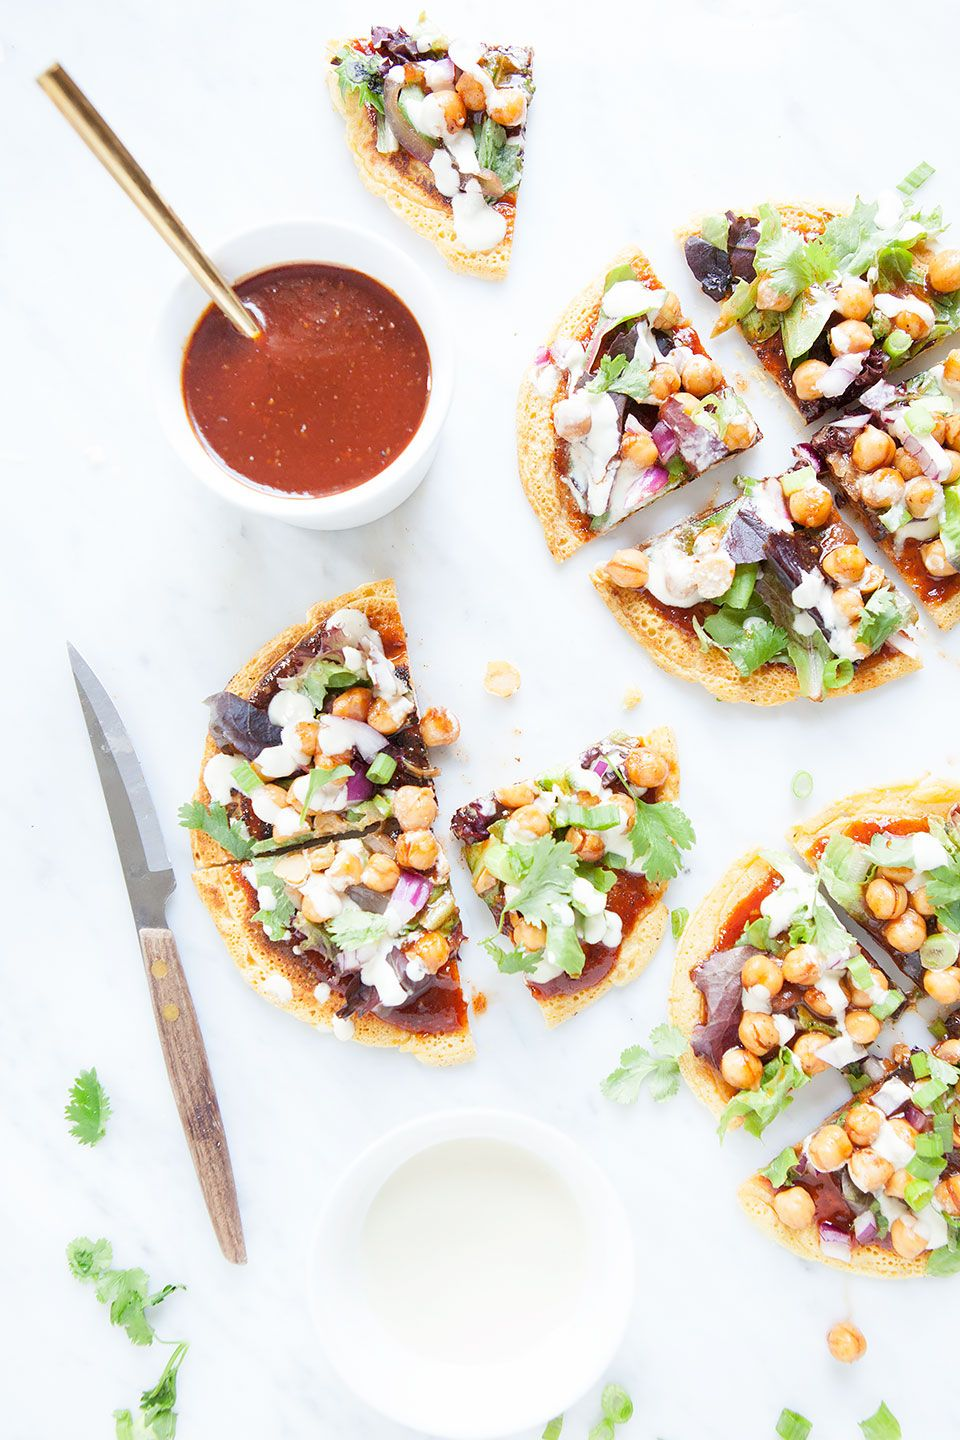 Barbecue Chickpea Socca Salad Pizza with Vegan Ranch Dressing is a delicious gluten free, dairy free, and vegan pizza. Perfect for summer!   Vegan, gluten free  and vegetarian.   Click for healthy recipe.   Via Loveleaf Co.  http://www.loveleafco.com/socca-salad-pizza/